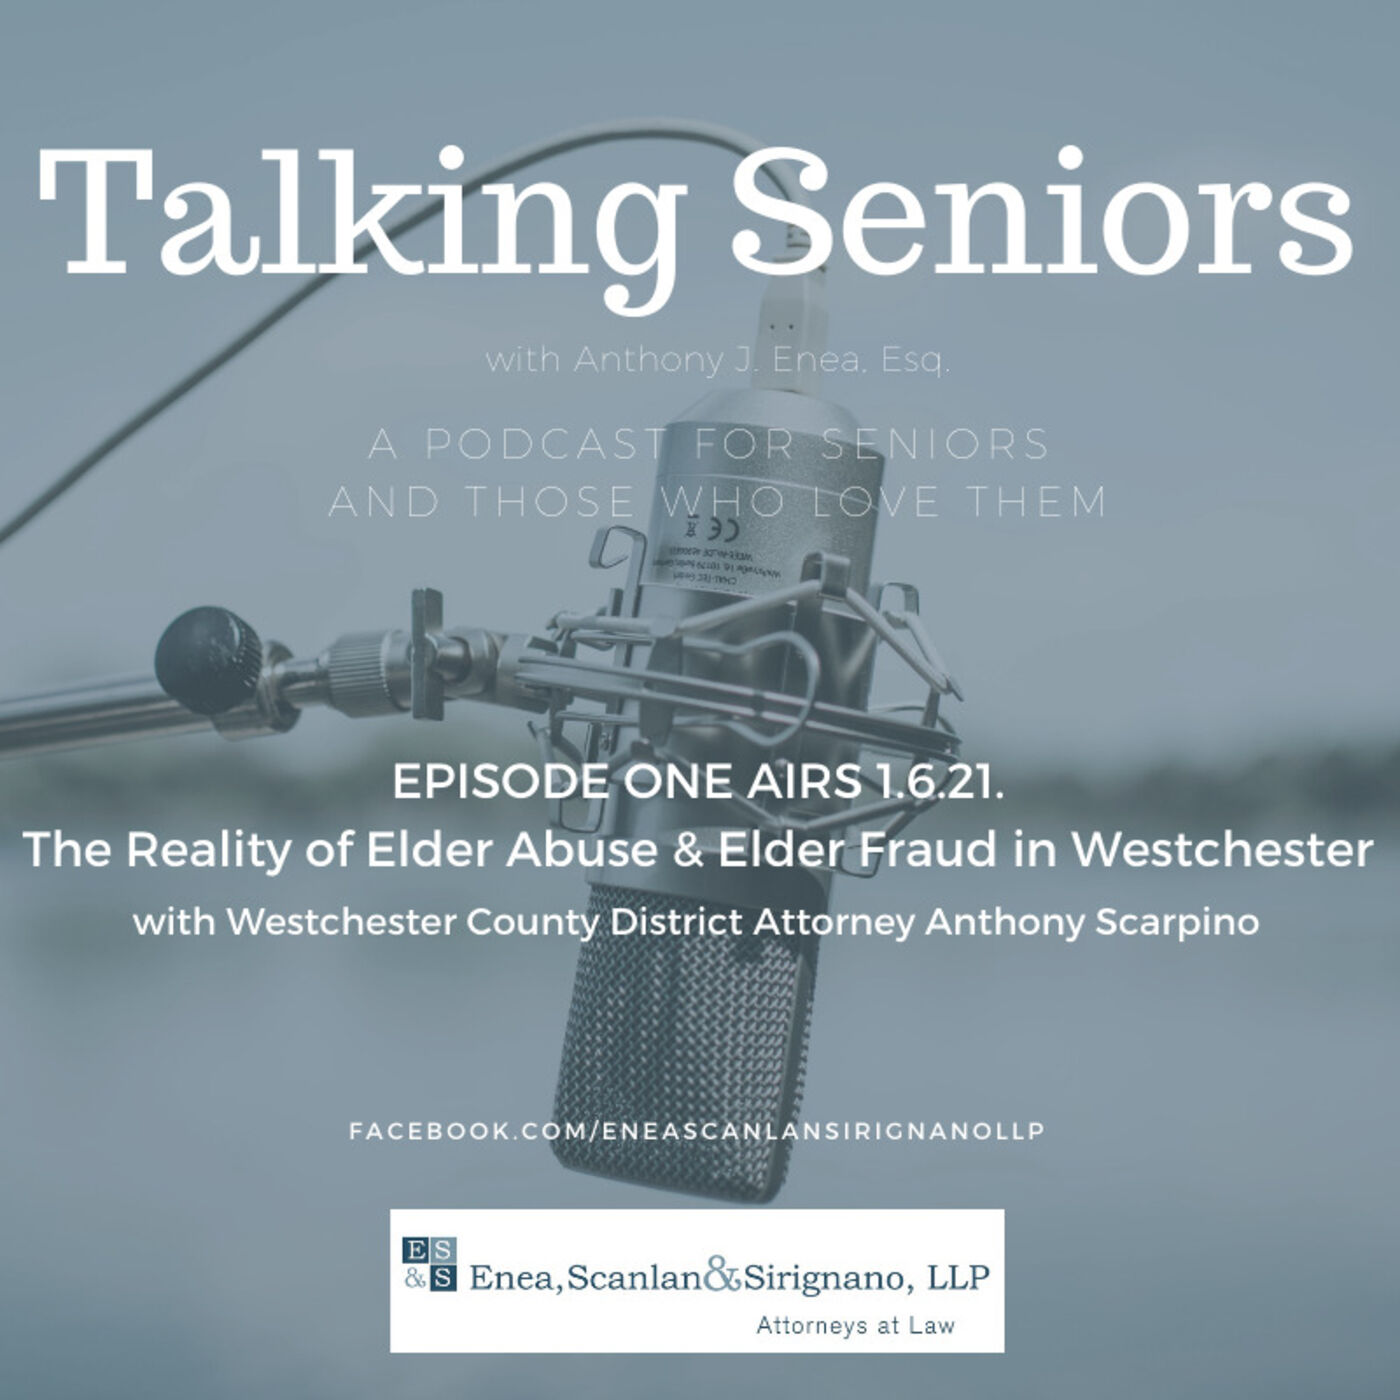 Episode 1: The reality of Elder Abuse and Elder Fraud in Westchester County with Former DA Anthony Scarpino